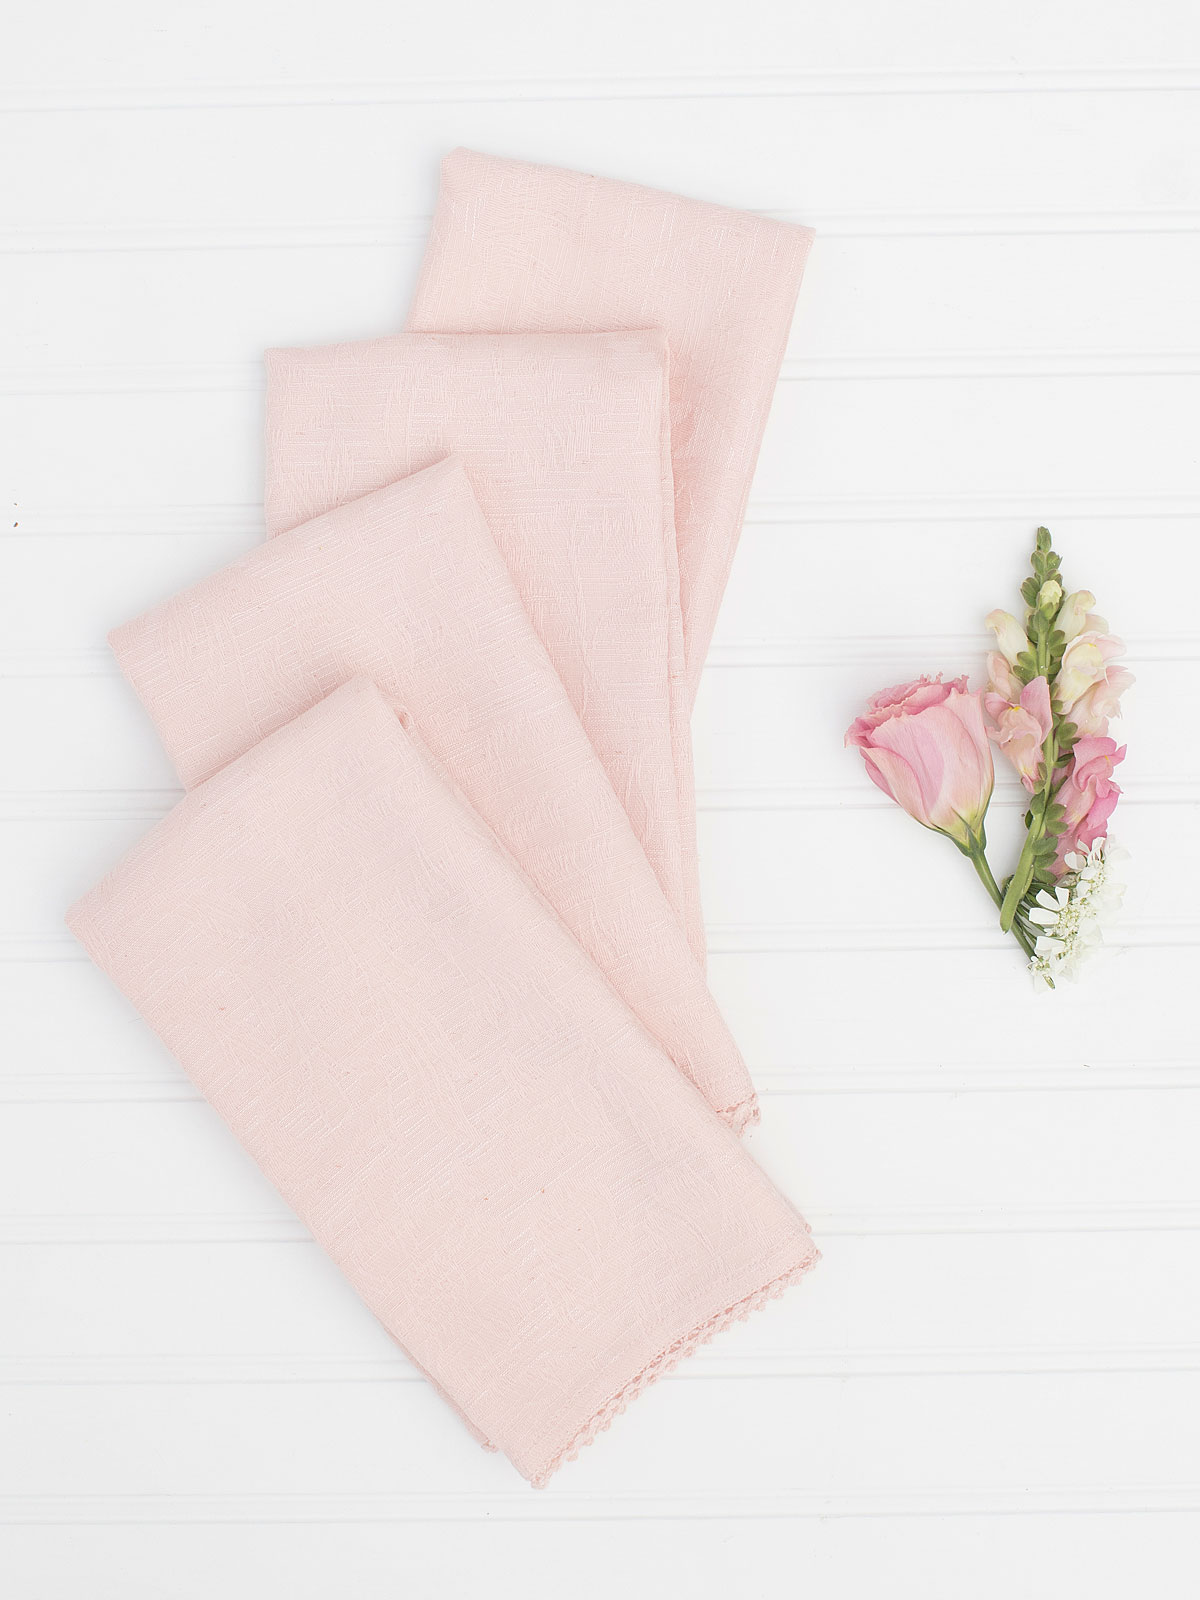 Luxurious Linen Jacquard Napkin Set of 4 - Soft Rose